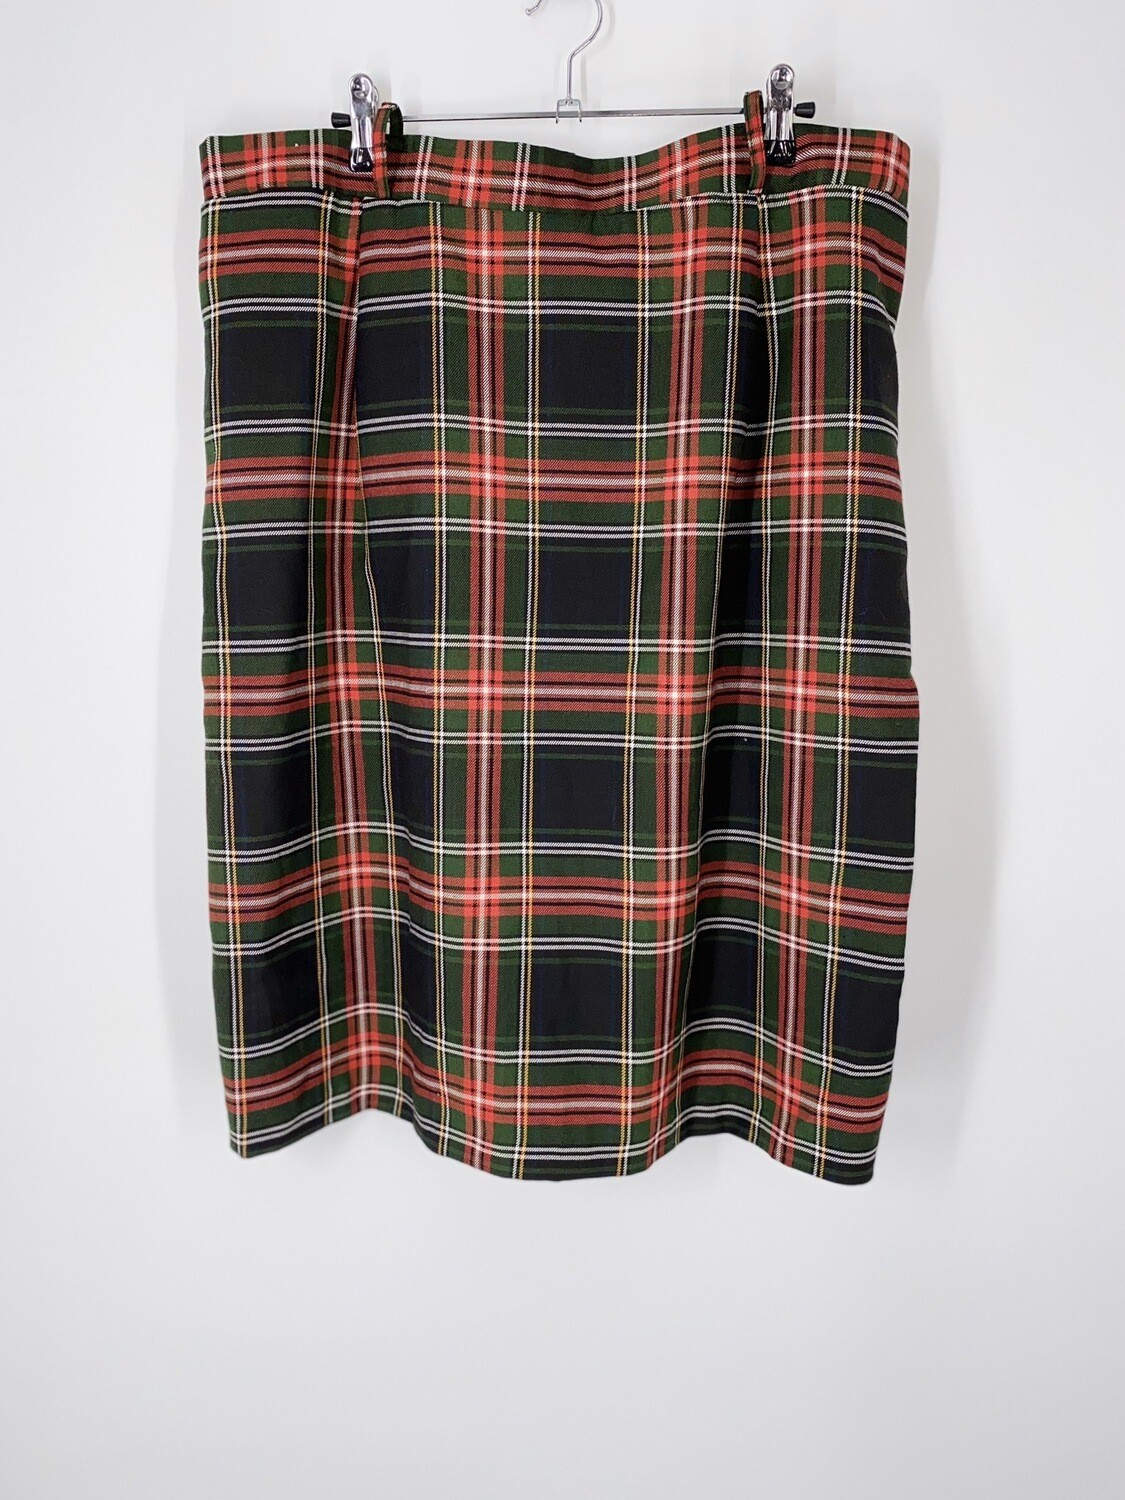 Bobbie Brooks Plaid Skirt Size L